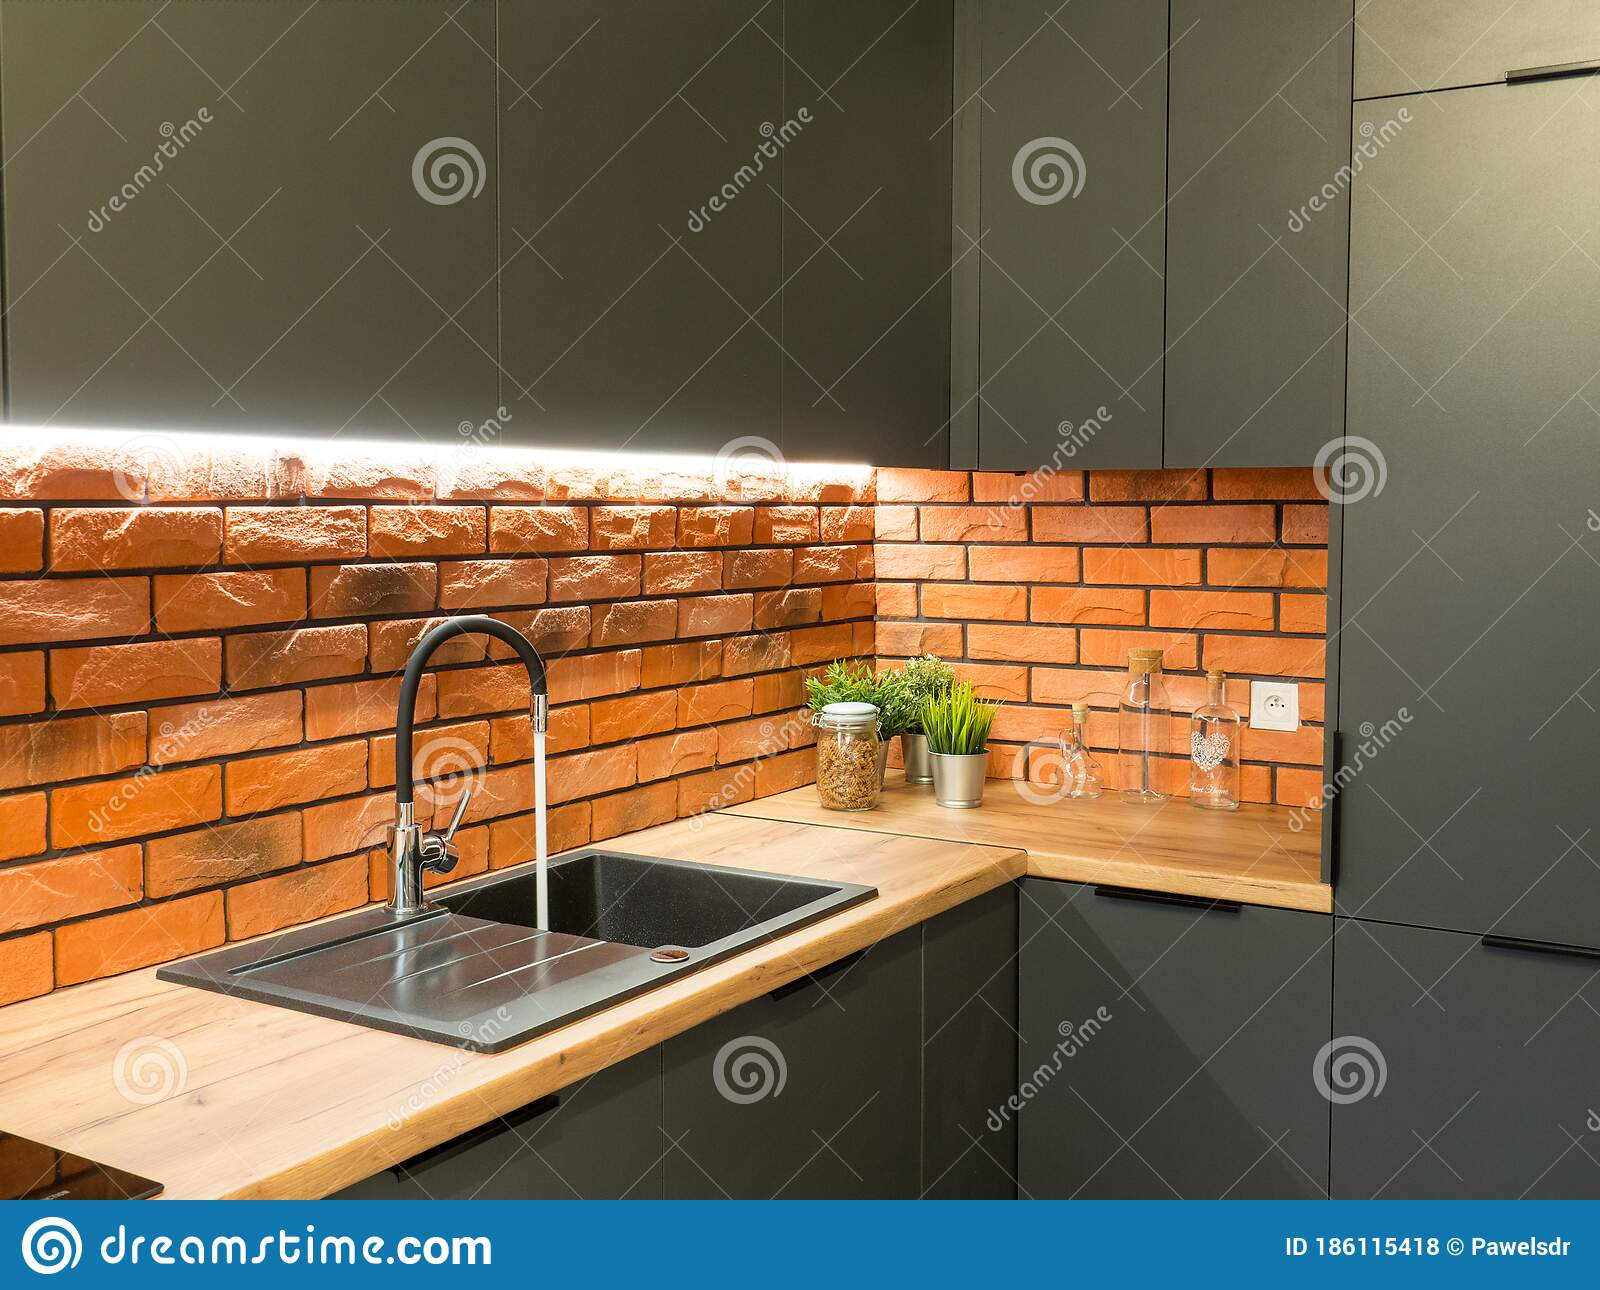 Black Kitchen Sink And Tap Water In The Modern Red And Gray Kitchen Stock Photo Image Of Sink Contemporary 186115418